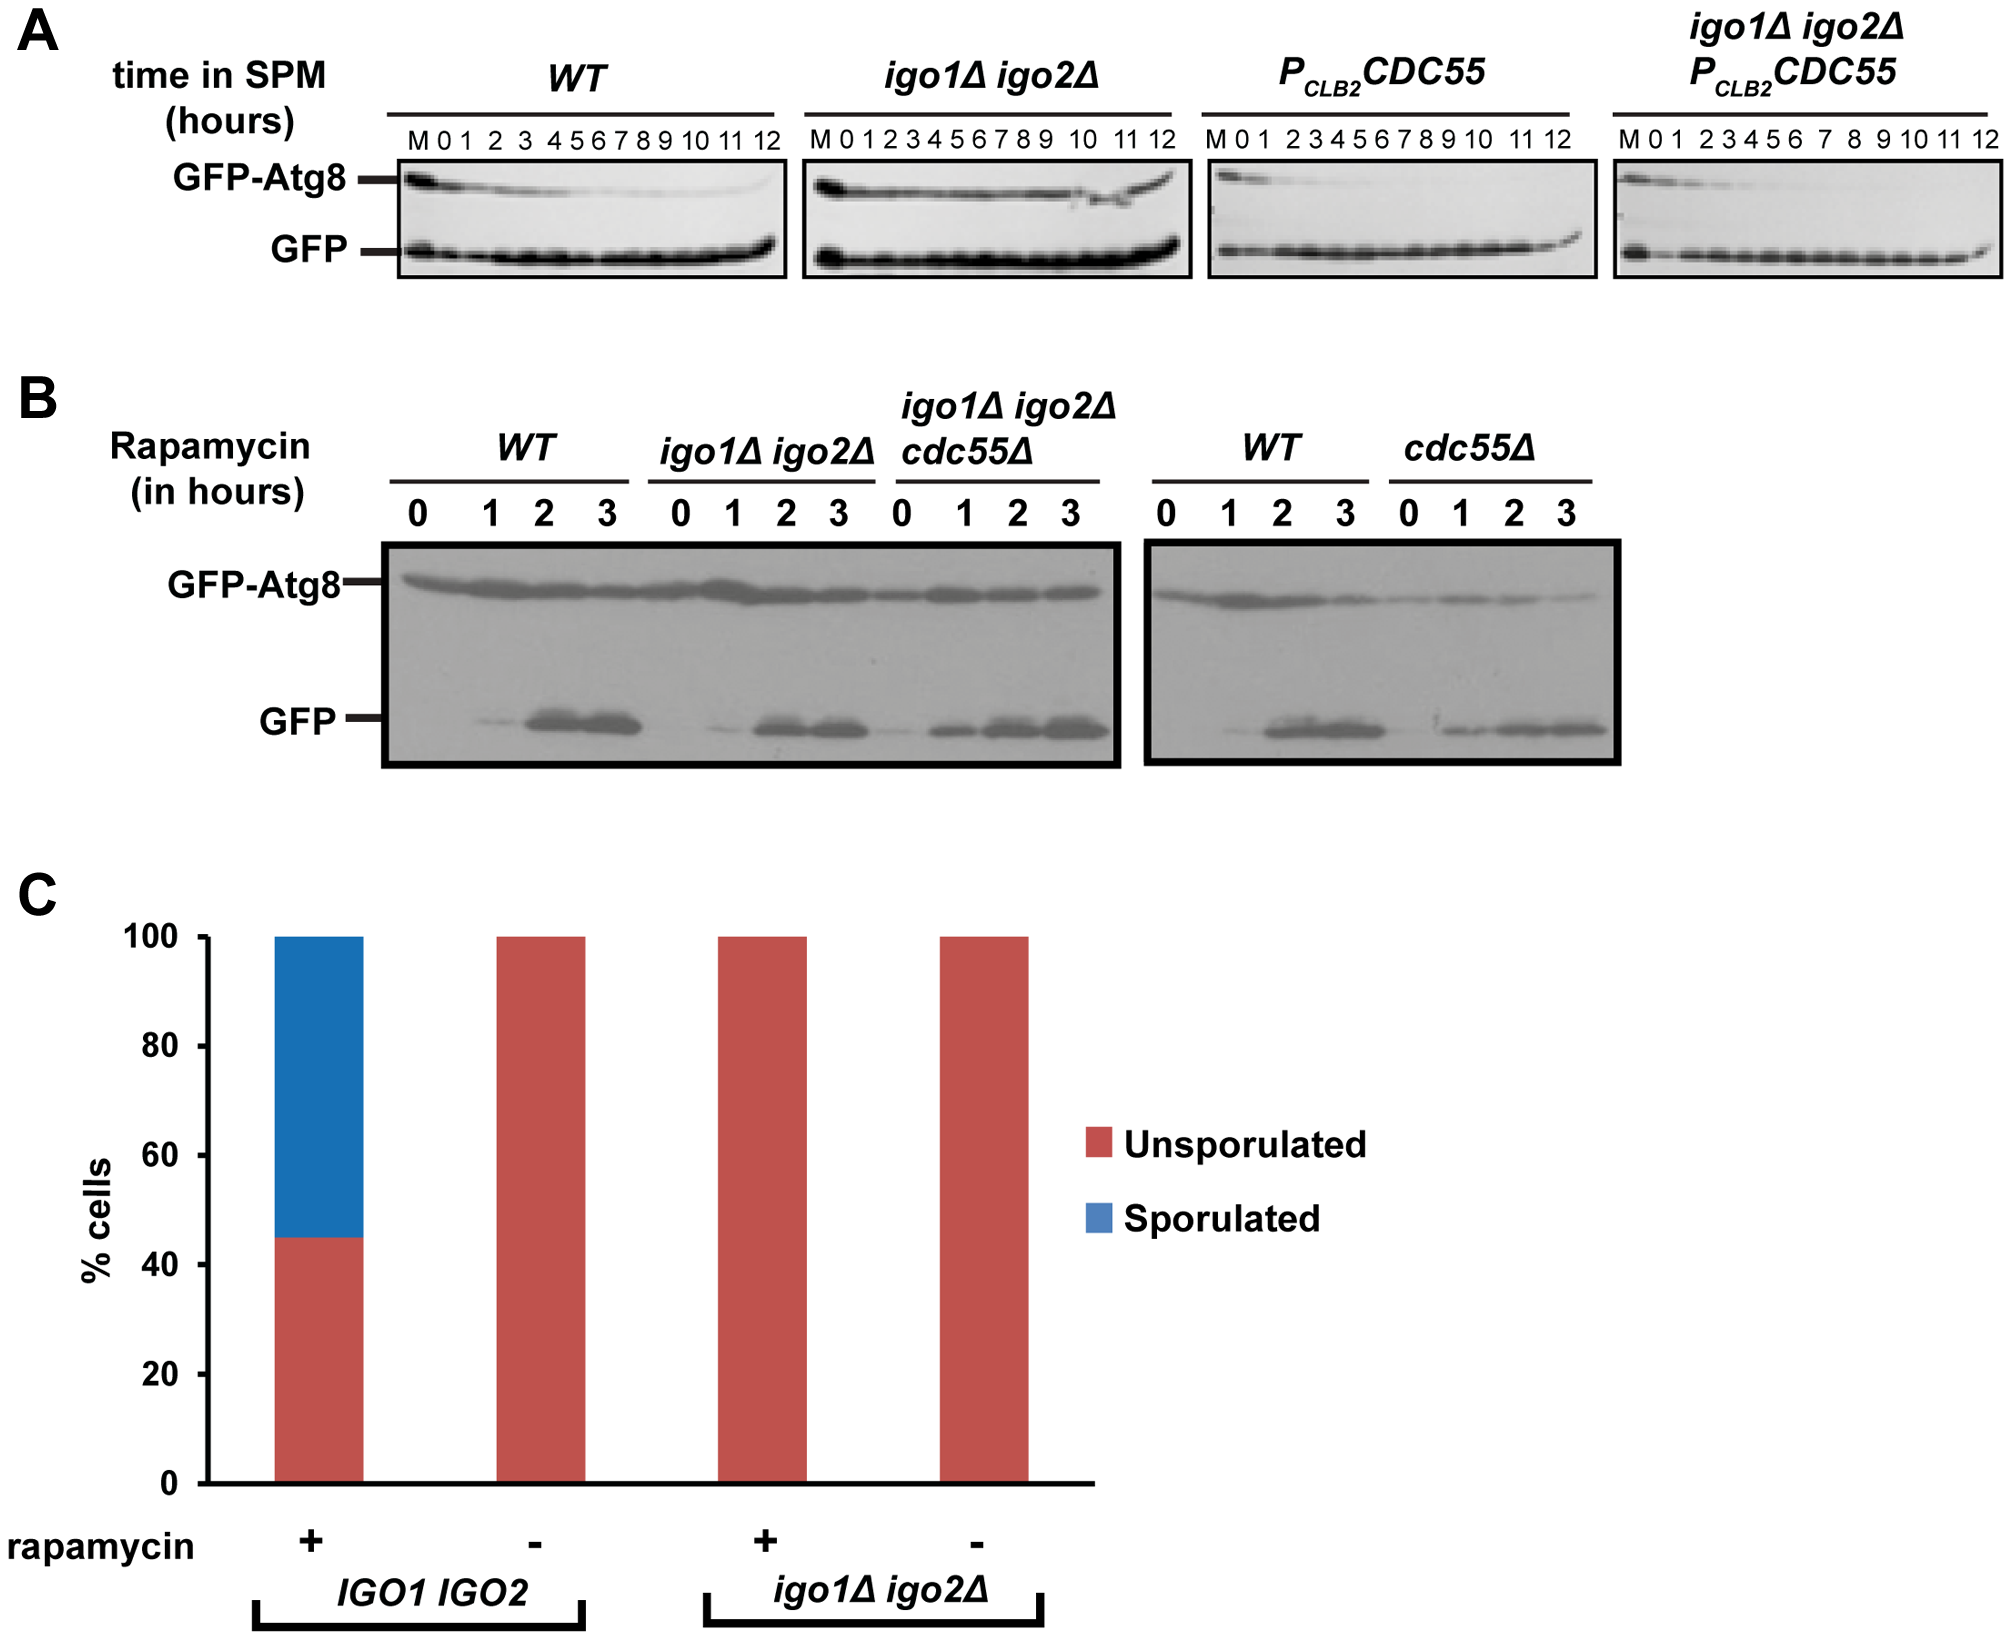 Endosulfine mutant is defective in pre-meiotic autophagy but not for autophagy induced by rapamycin treatment.